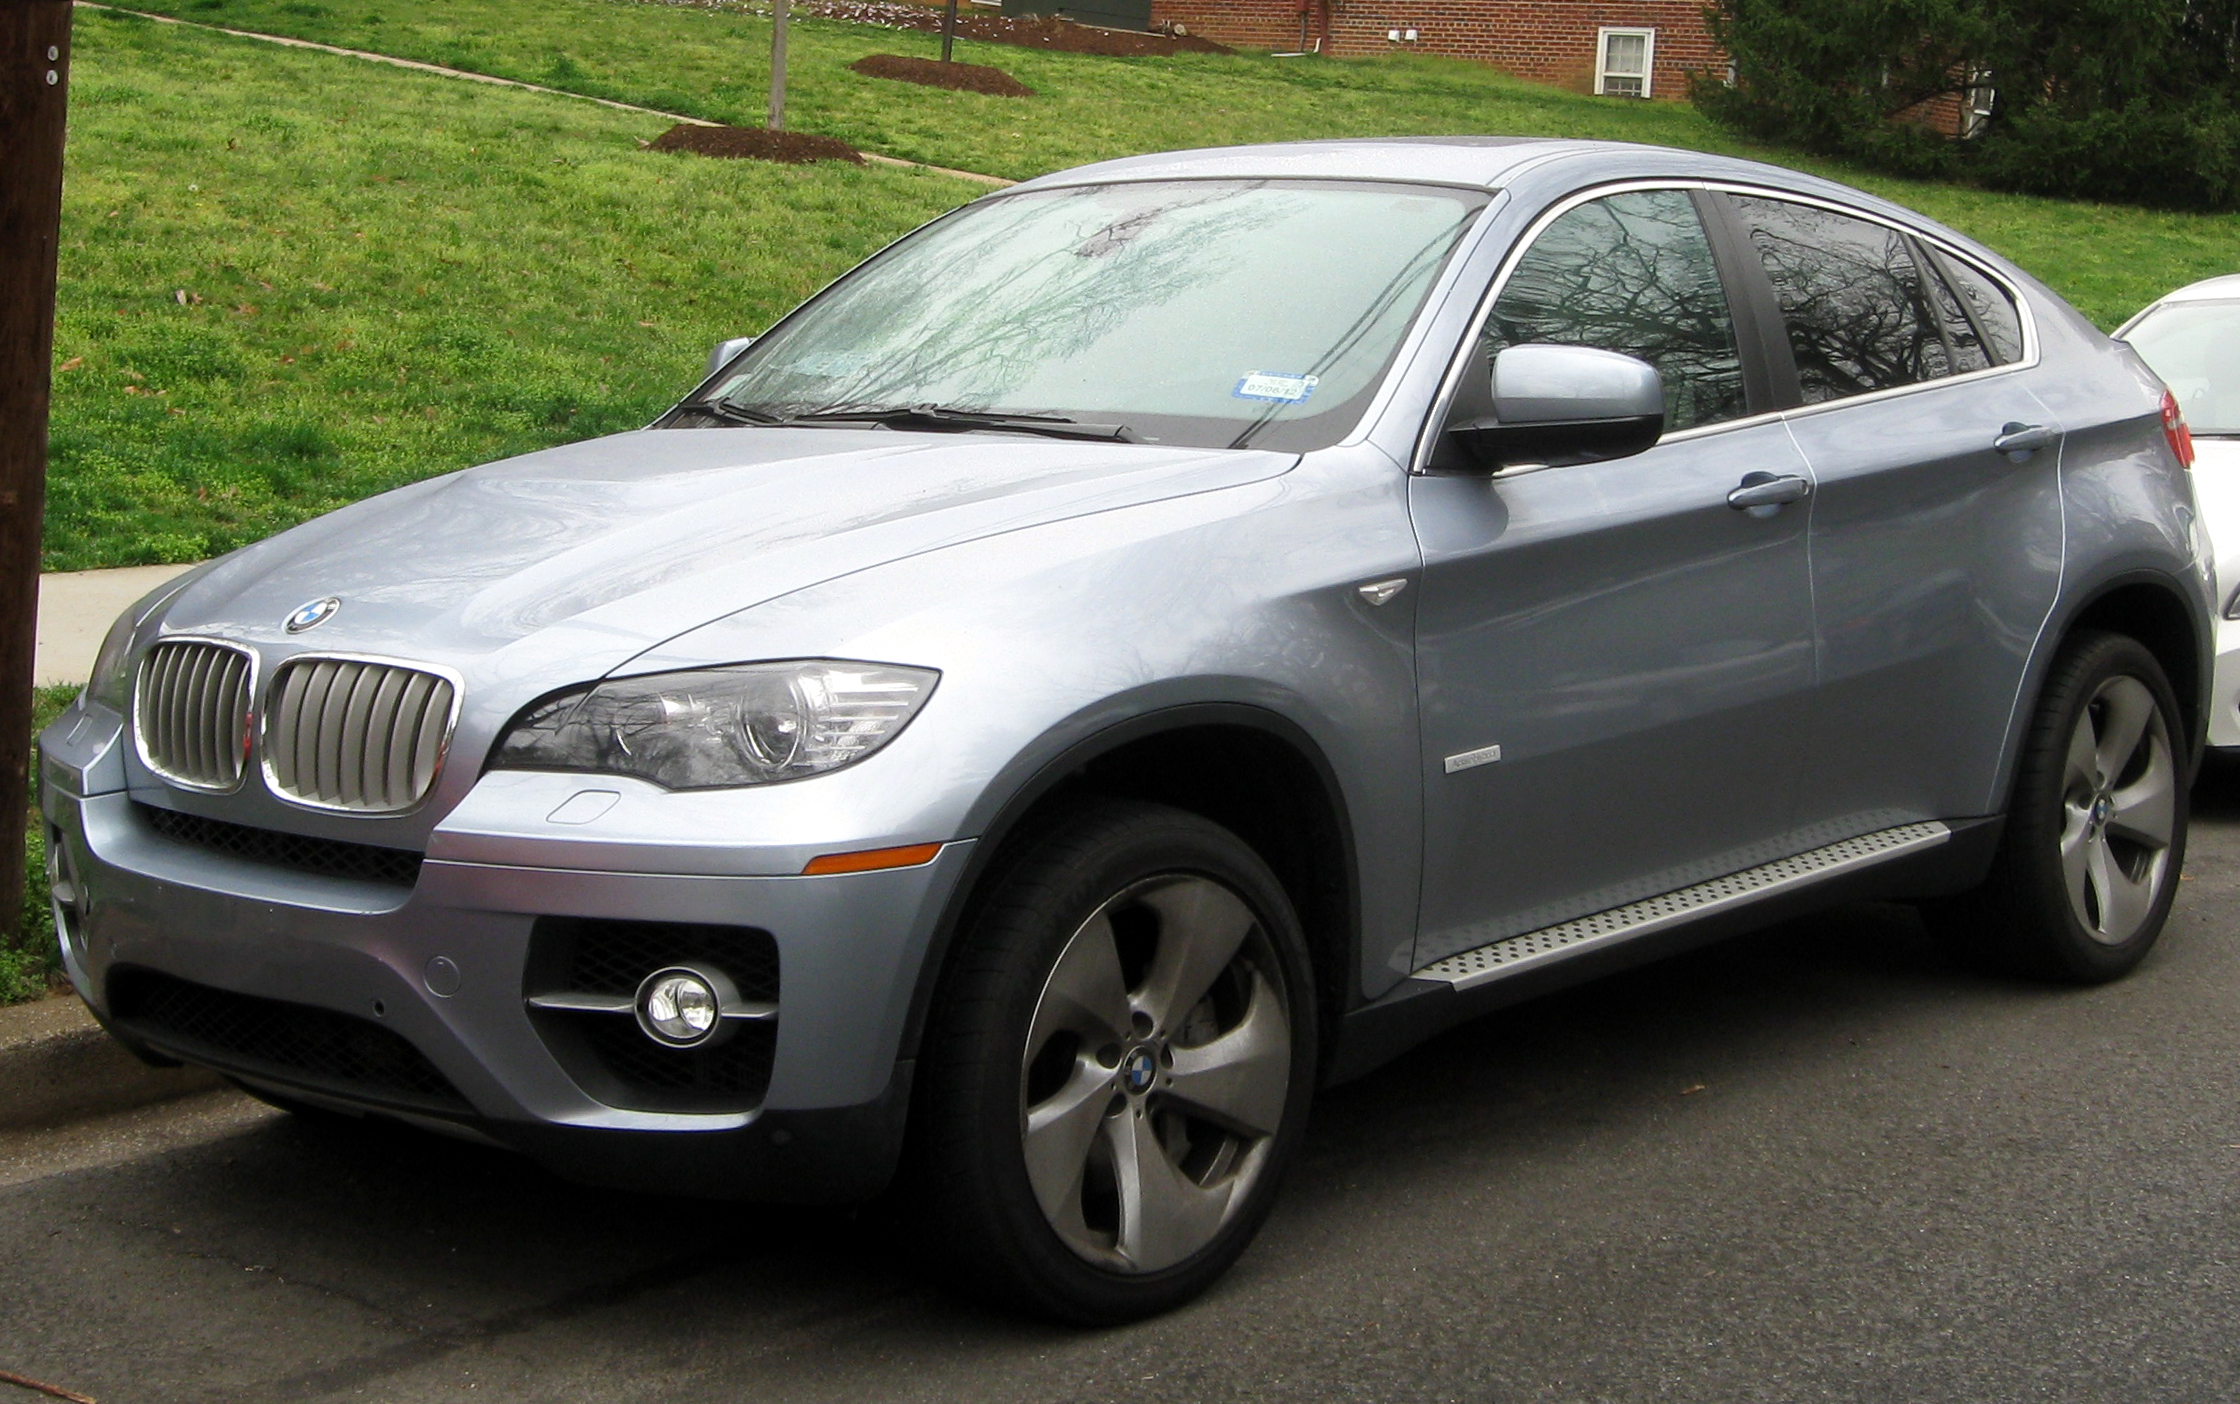 photo of Mehmet Akif Alakurt BMW X6 - car